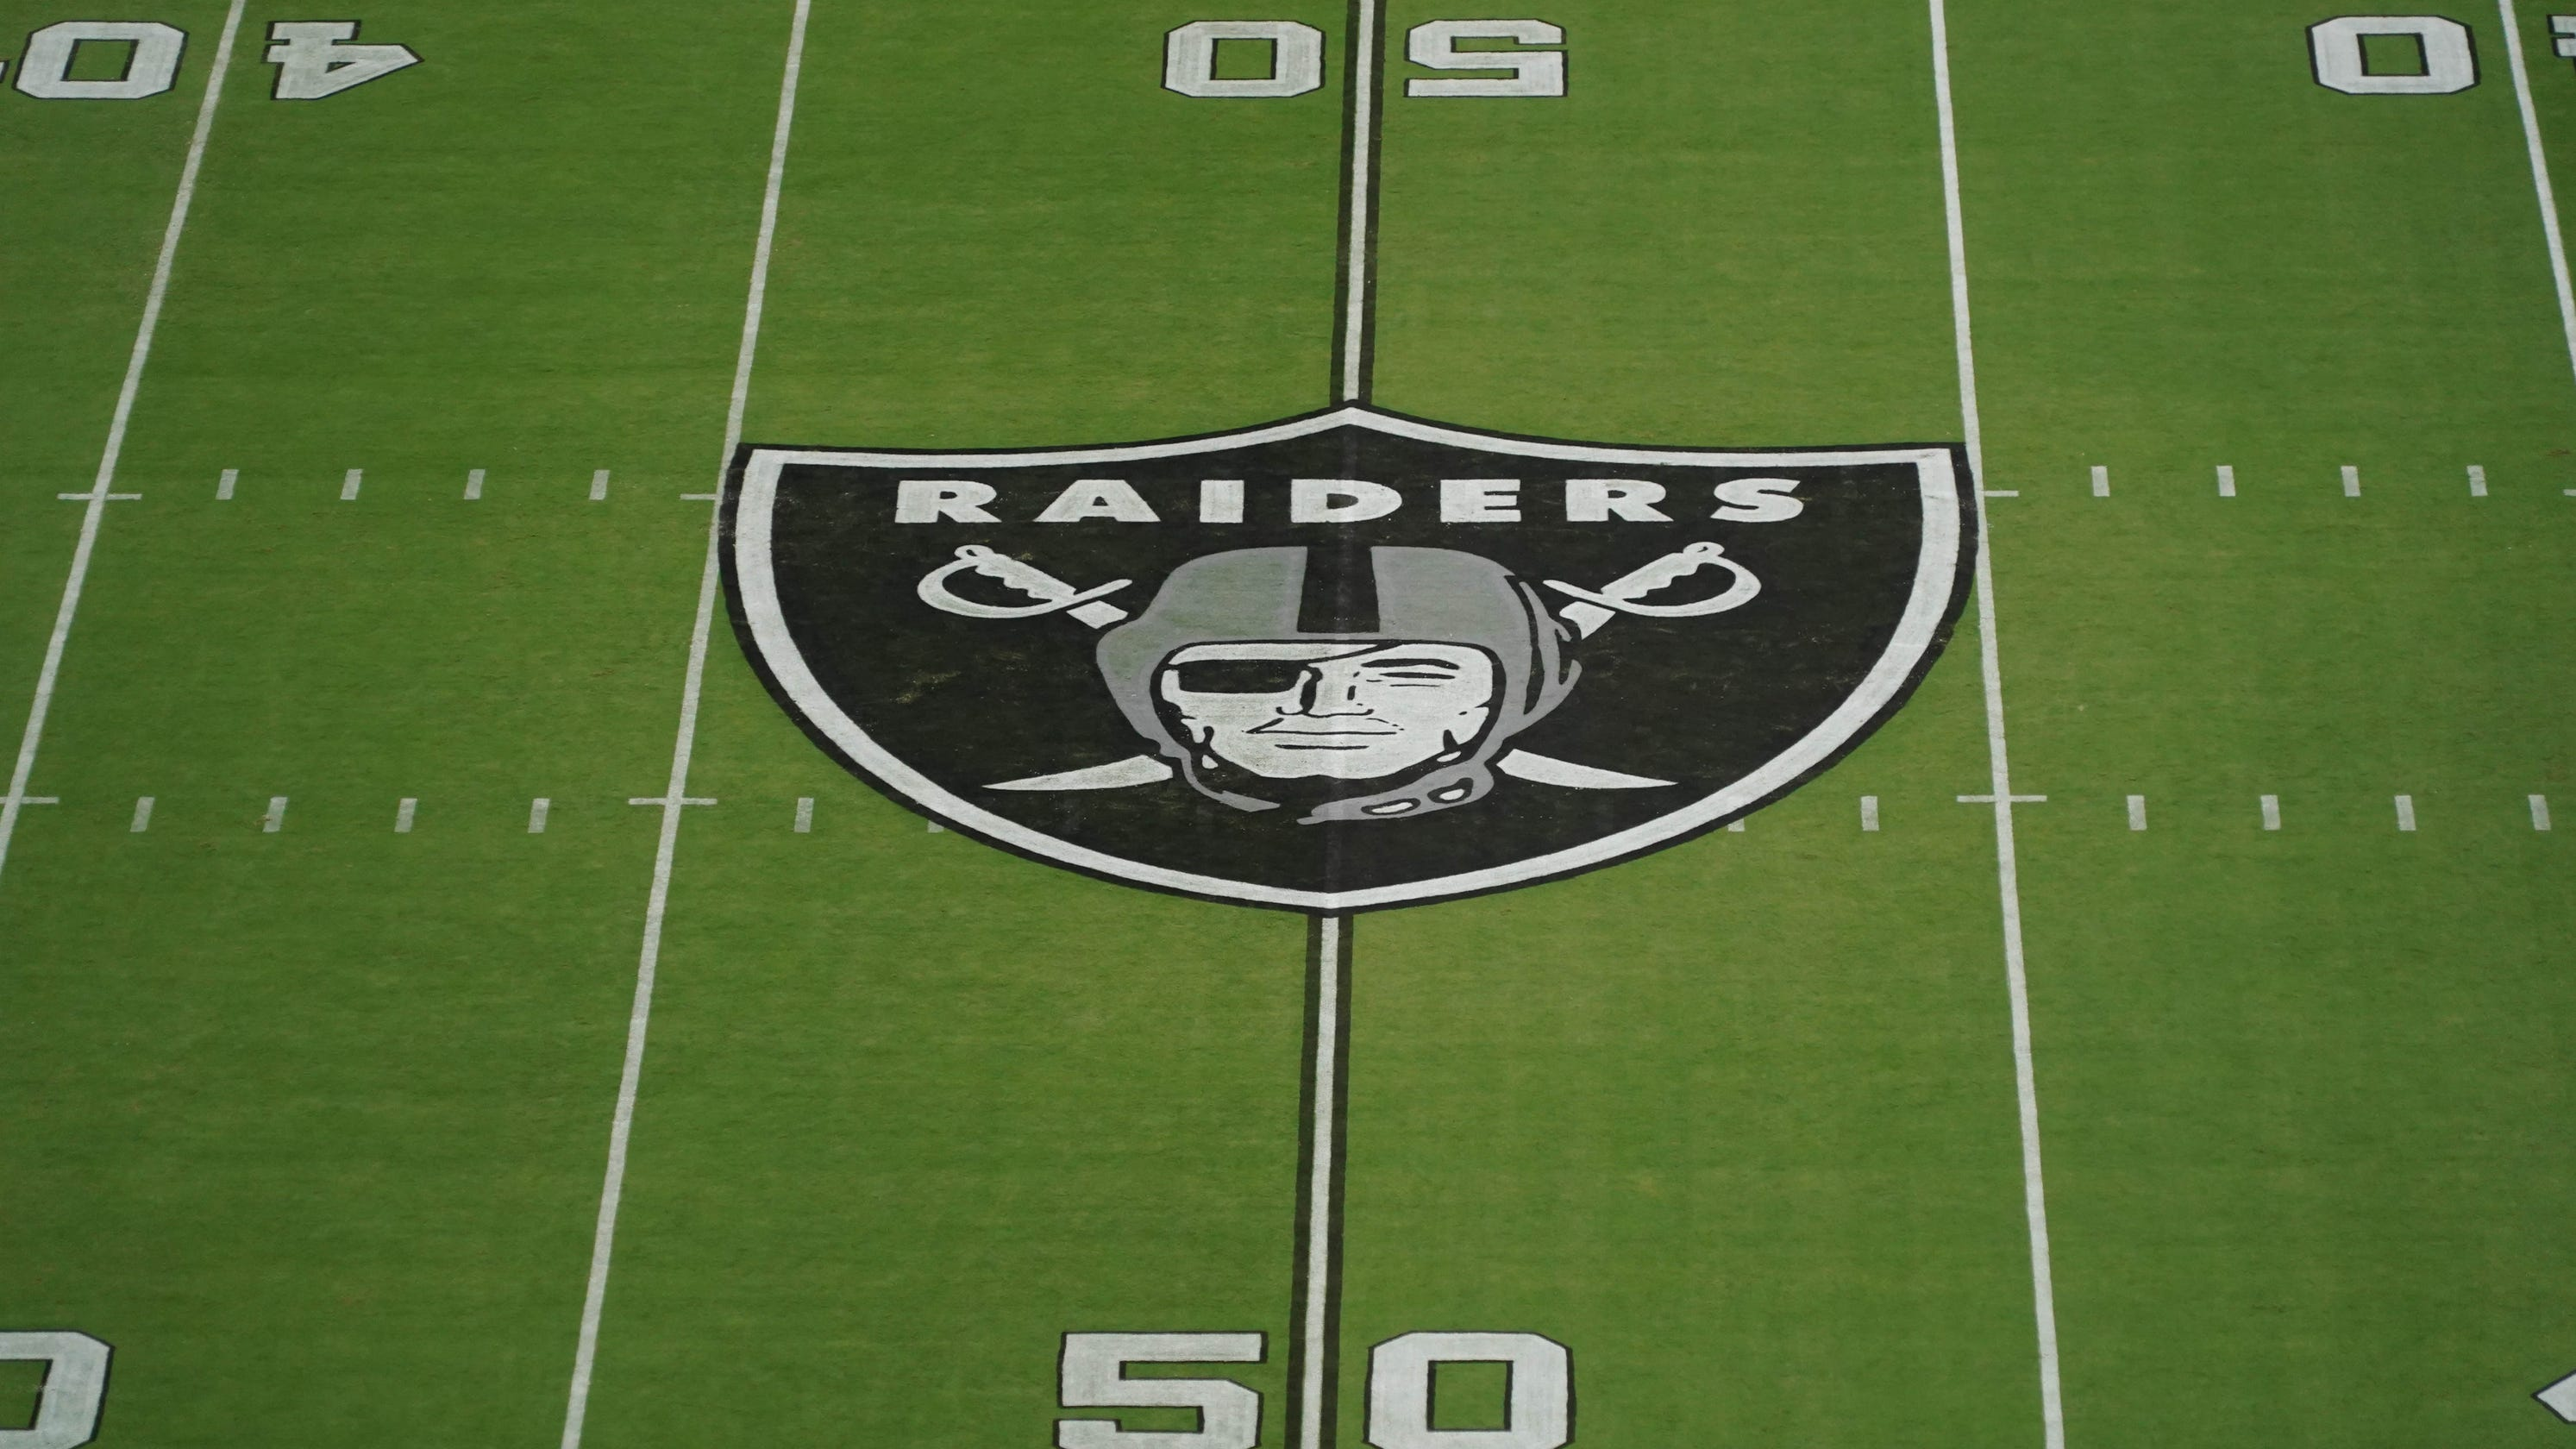 Report: NFL investigating Raiders over locker room access after win Monday night